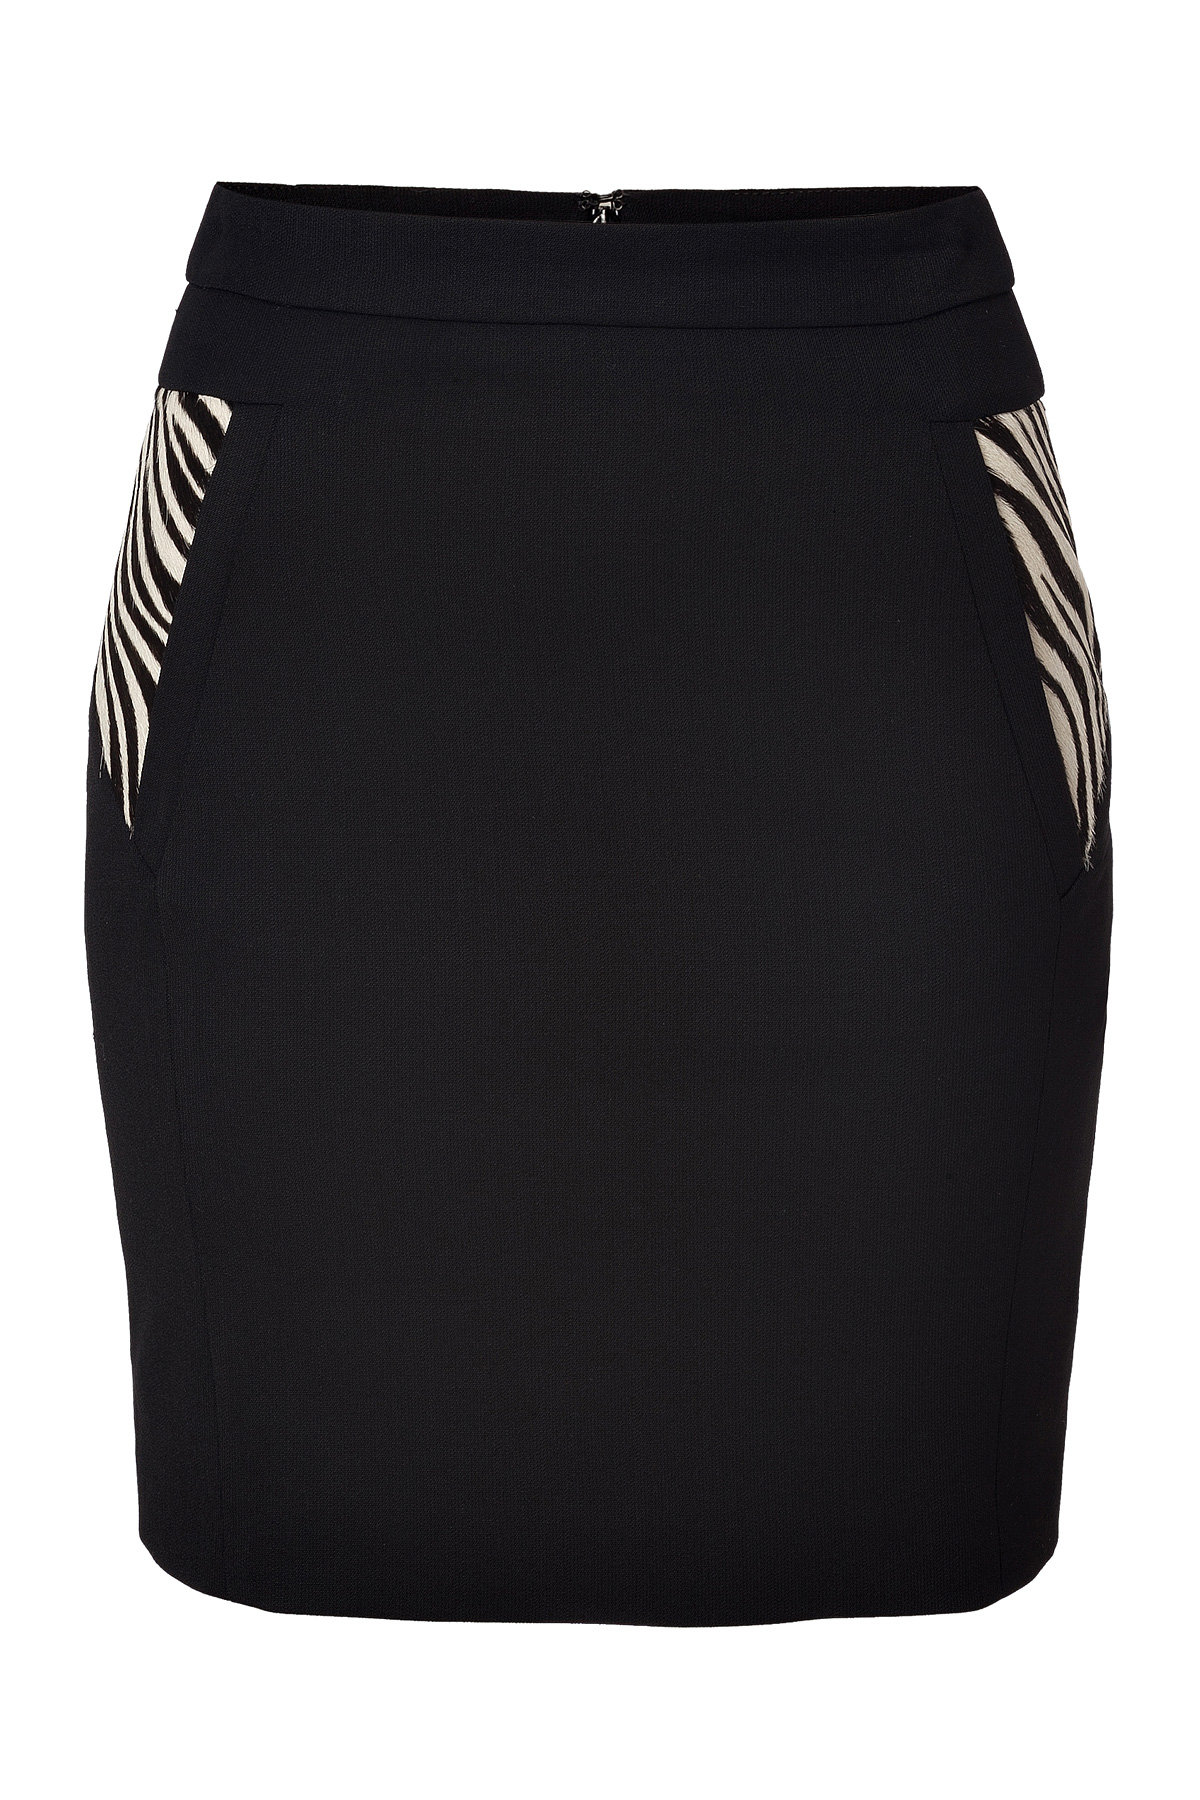 the kooples stretch wool pencil skirt with zebra panels in